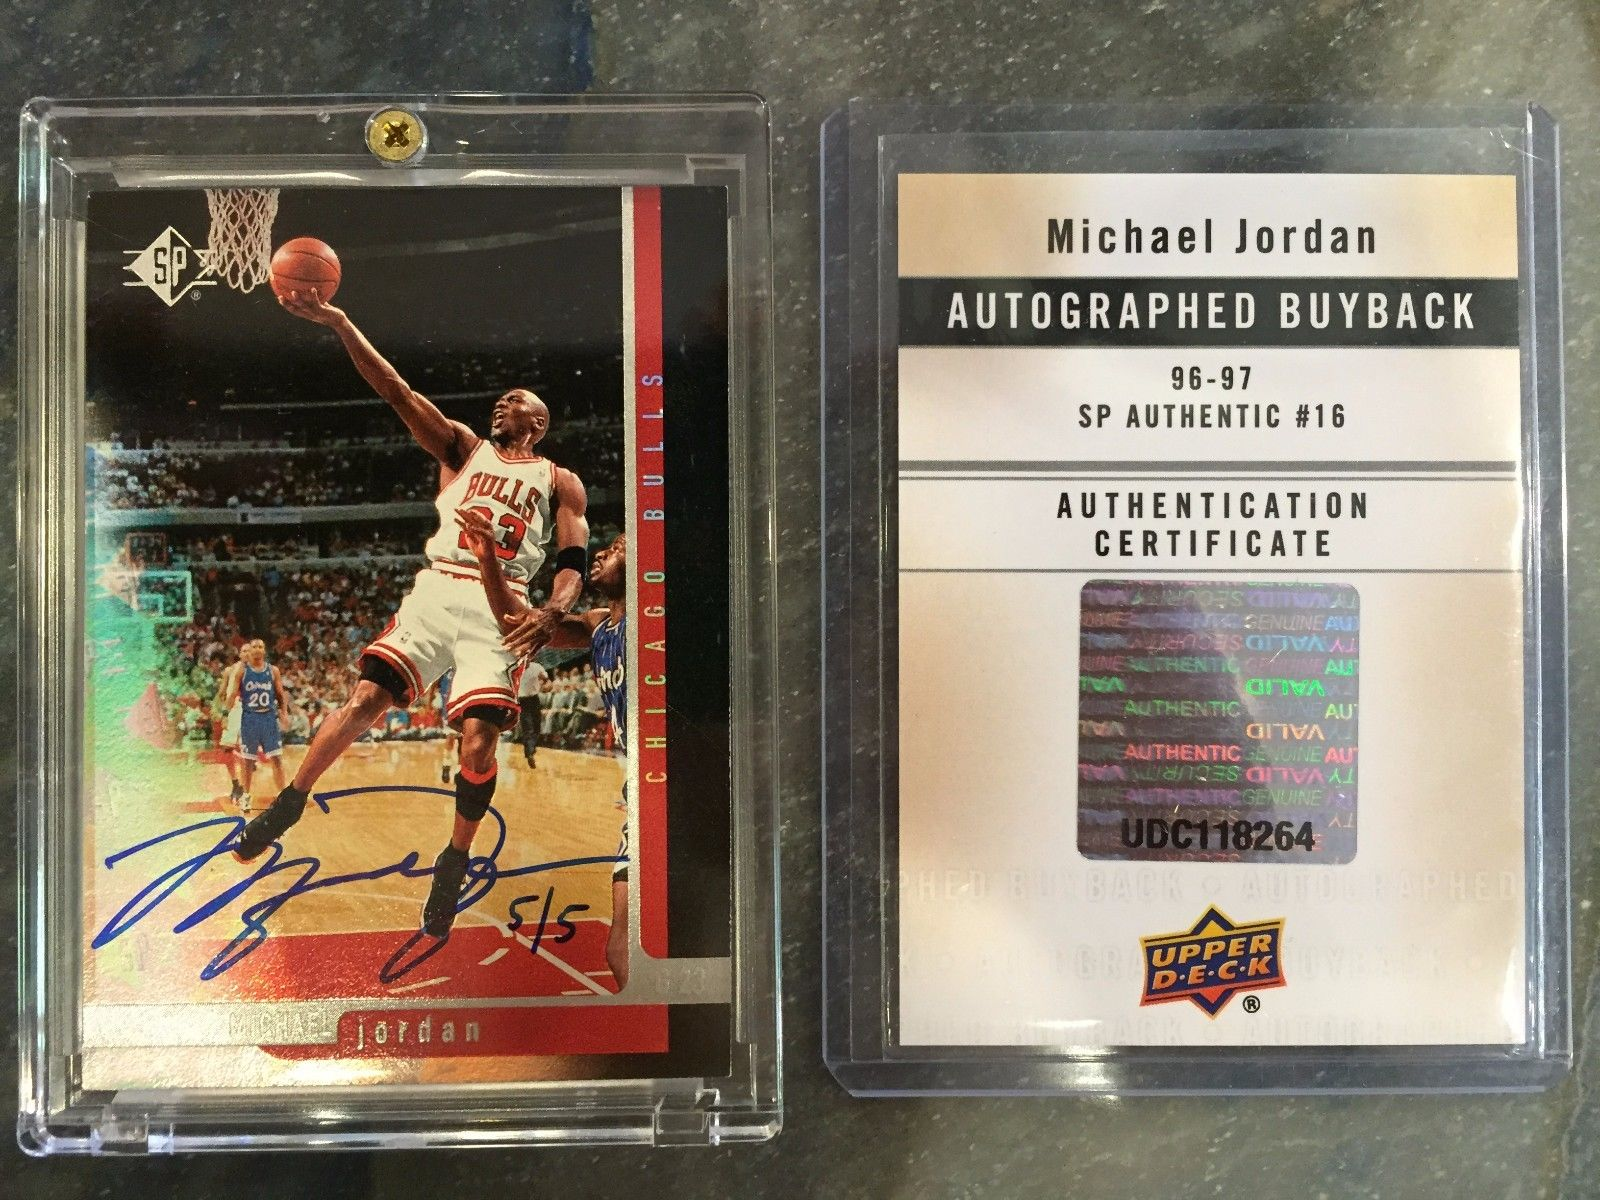 1996 1997  SP Authentic Buyback michael jordan Autograph Signature